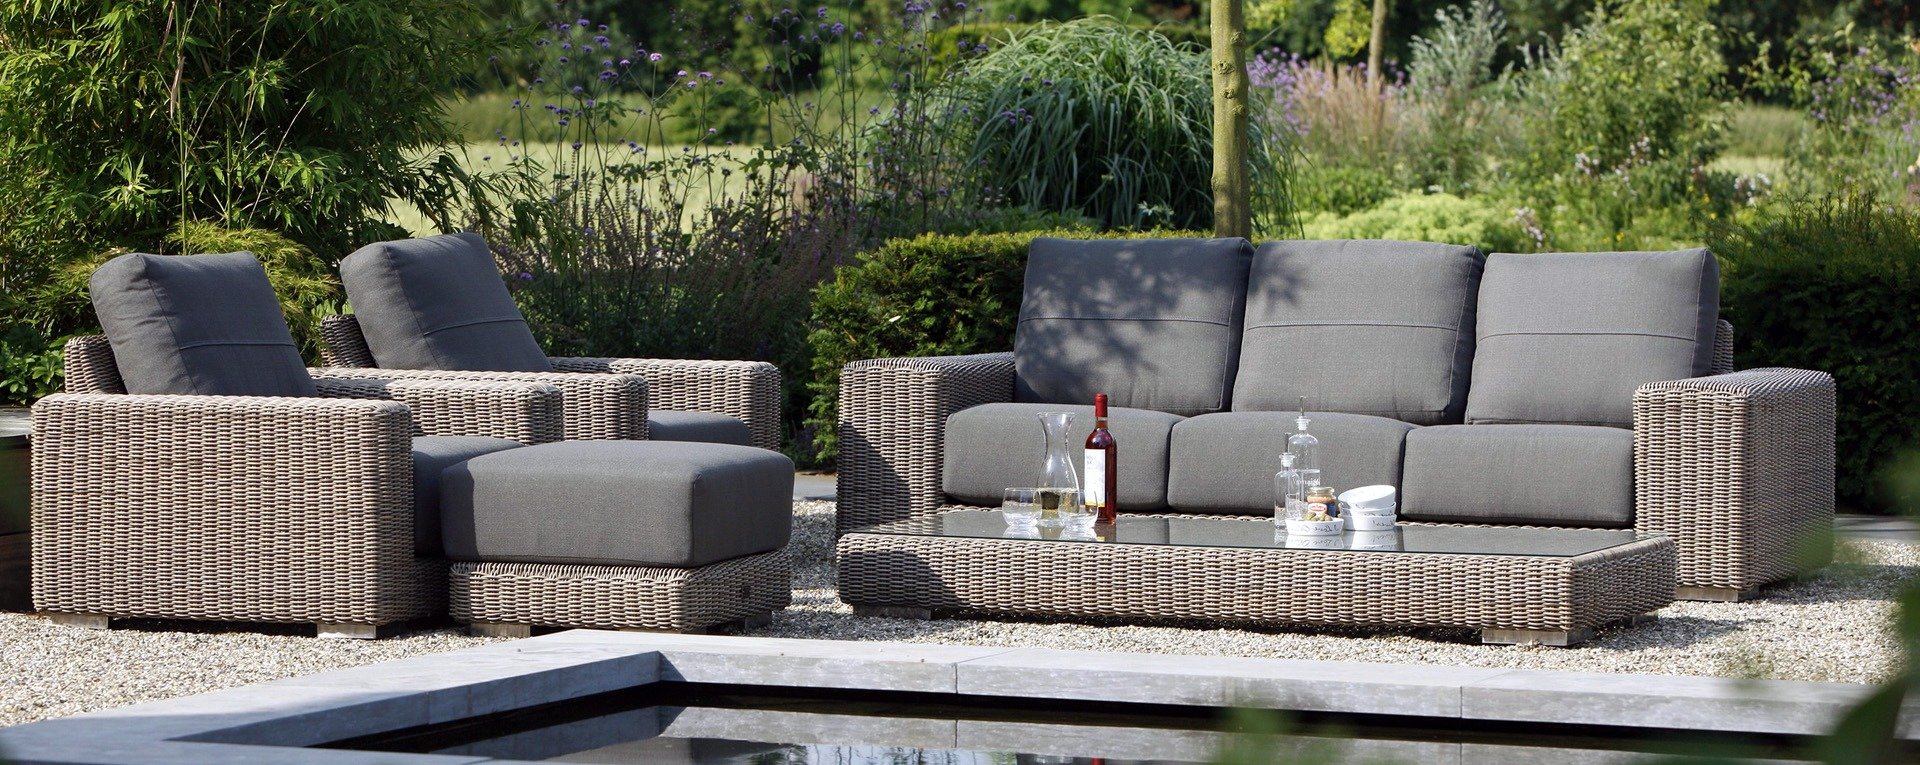 4 seasons outdoor kingston loungeset pure best deal tuinmeubelen. Black Bedroom Furniture Sets. Home Design Ideas